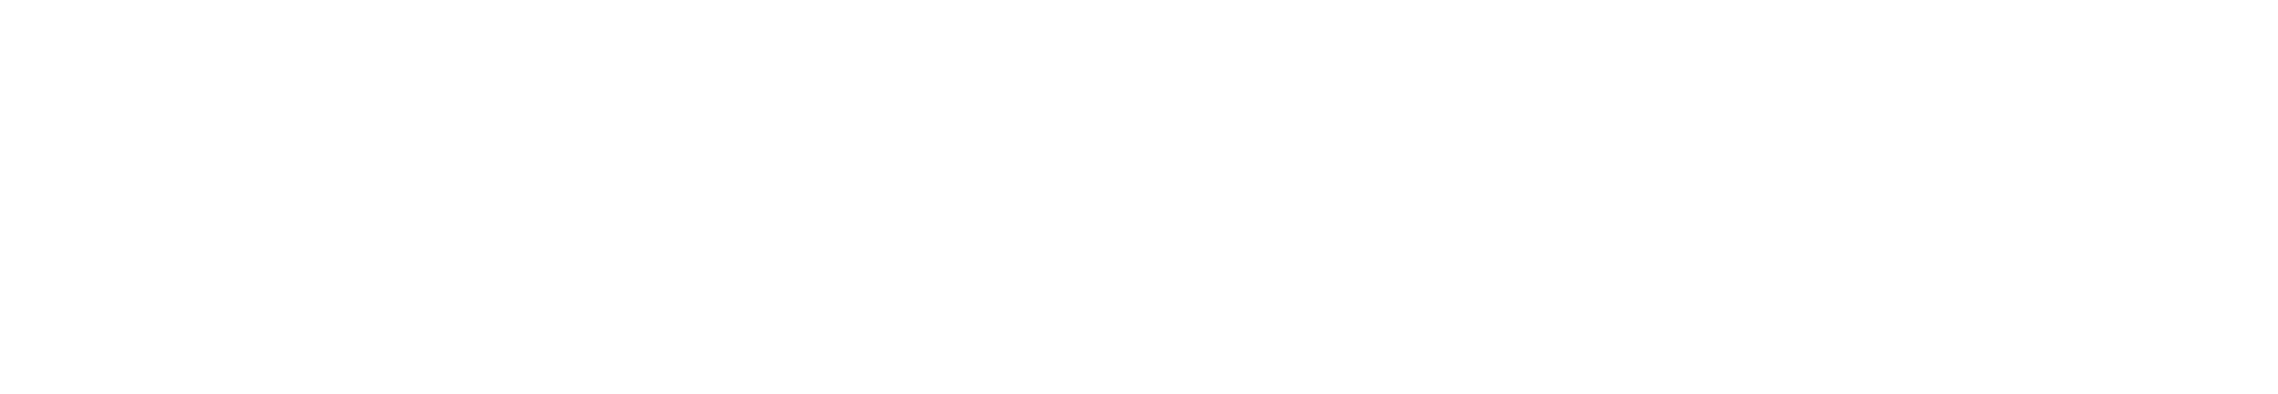 camille-ariane-makeup-logo-white center.png